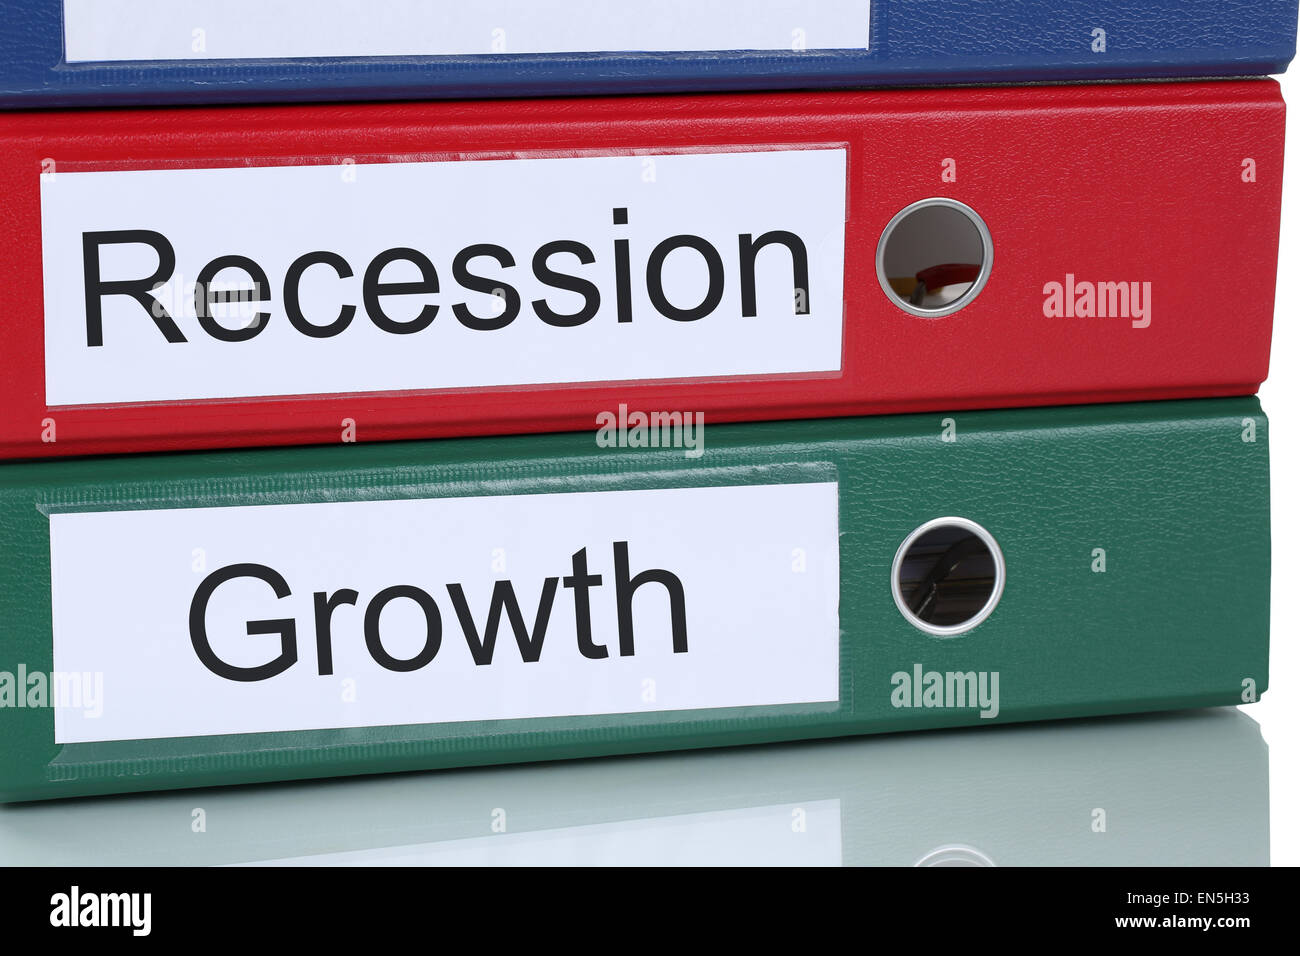 Growth success and recession crisis in office company business concept - Stock Image